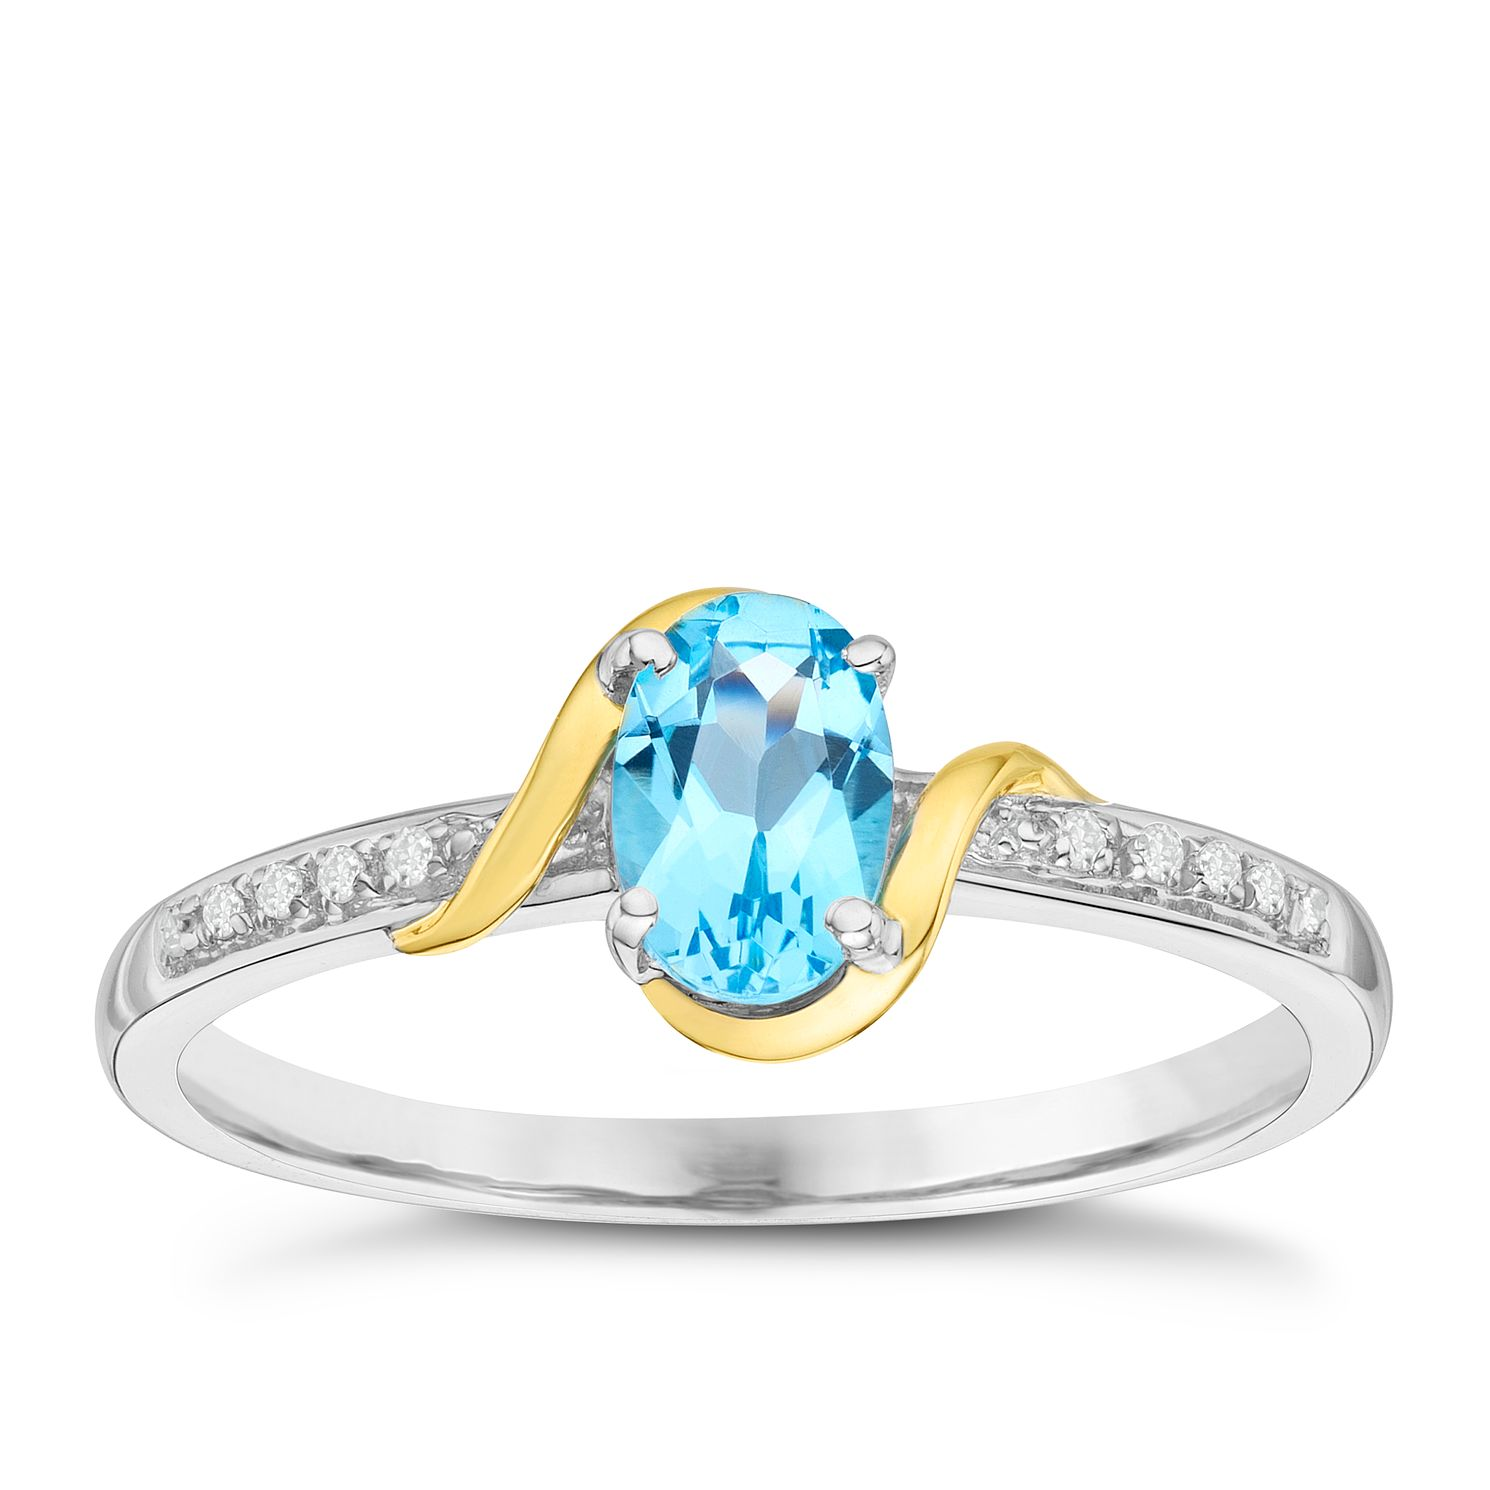 dp to stone silver rhodium topaz in london blue ring jewelry com carats finish design nickel amazon rings sterling sizes